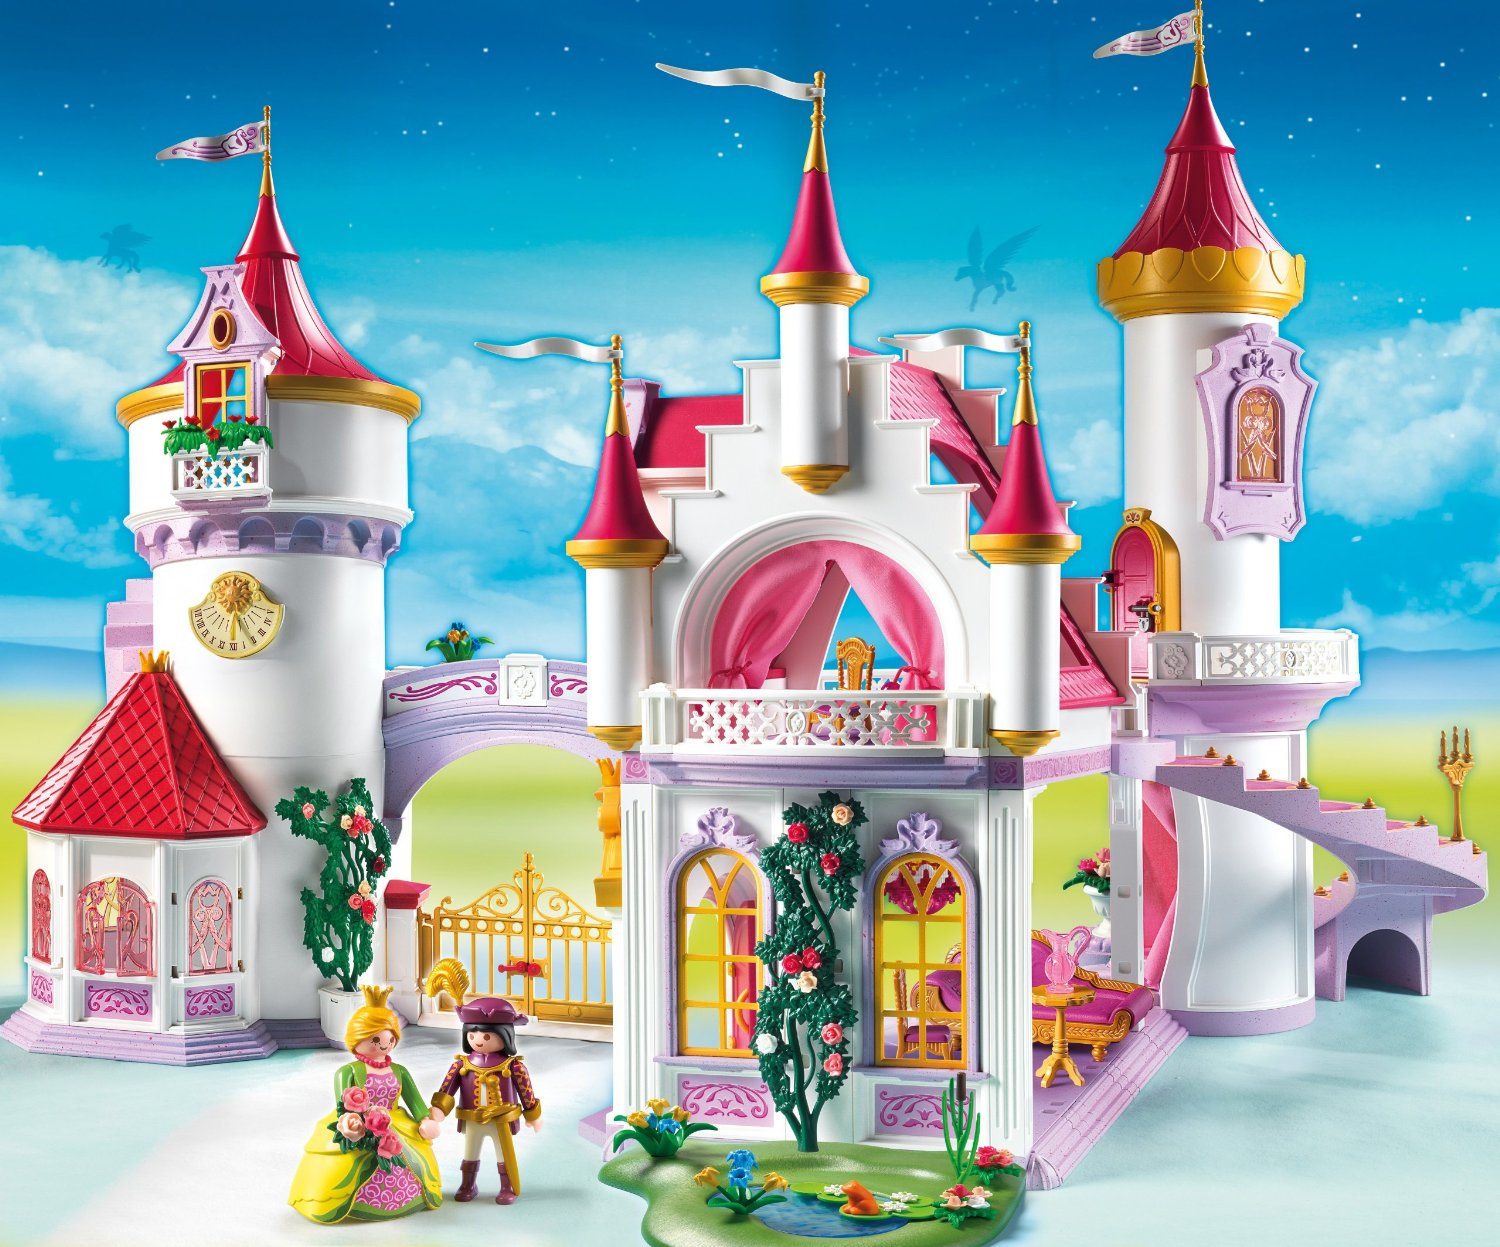 Princess Fantasy Castle Playmobil 5142